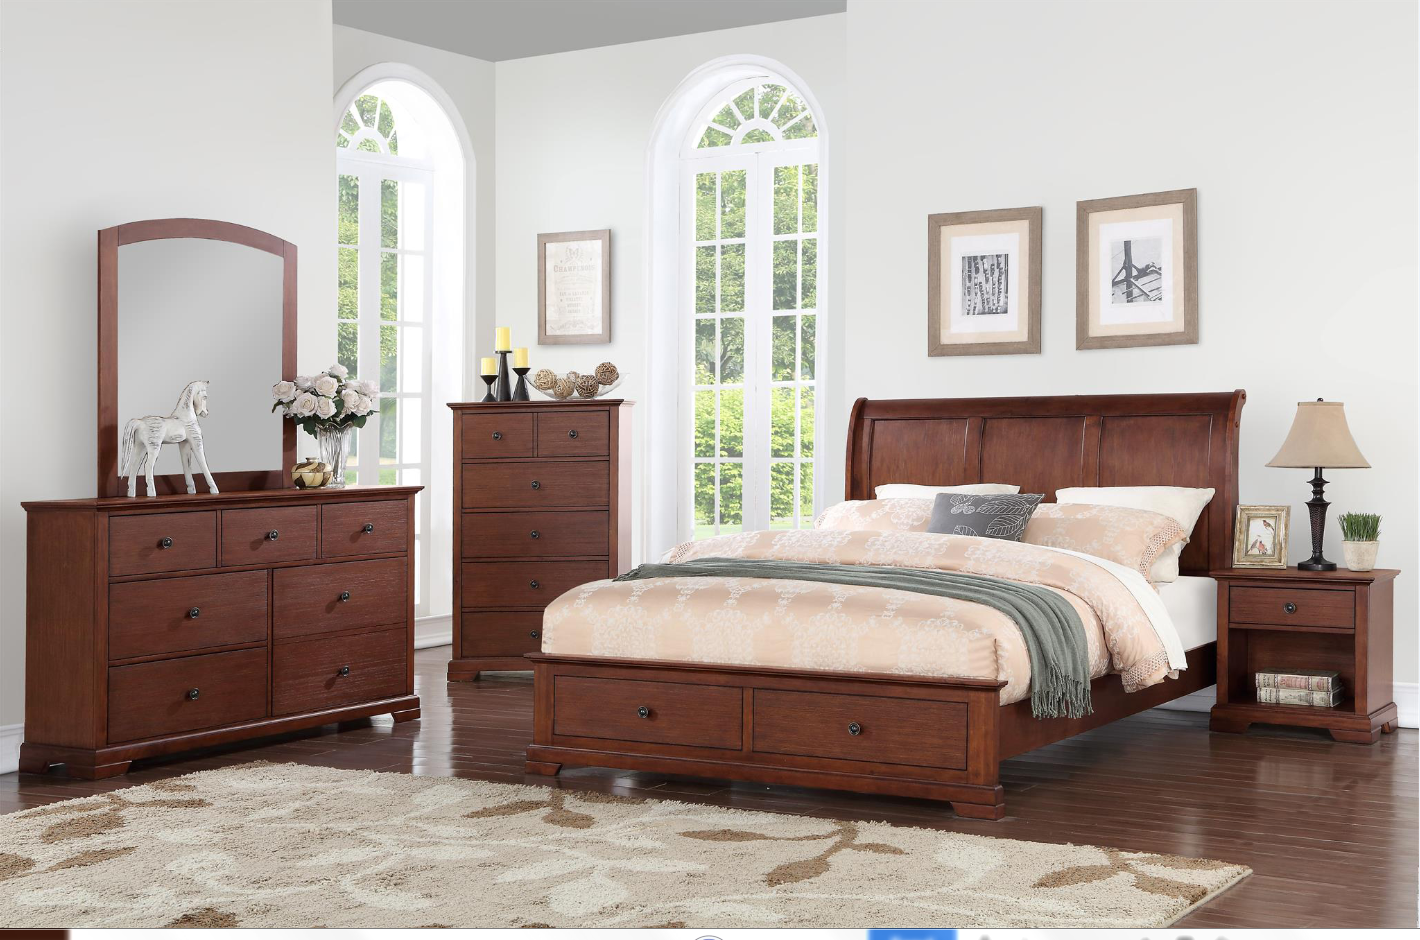 bedroom furniture, furniture store